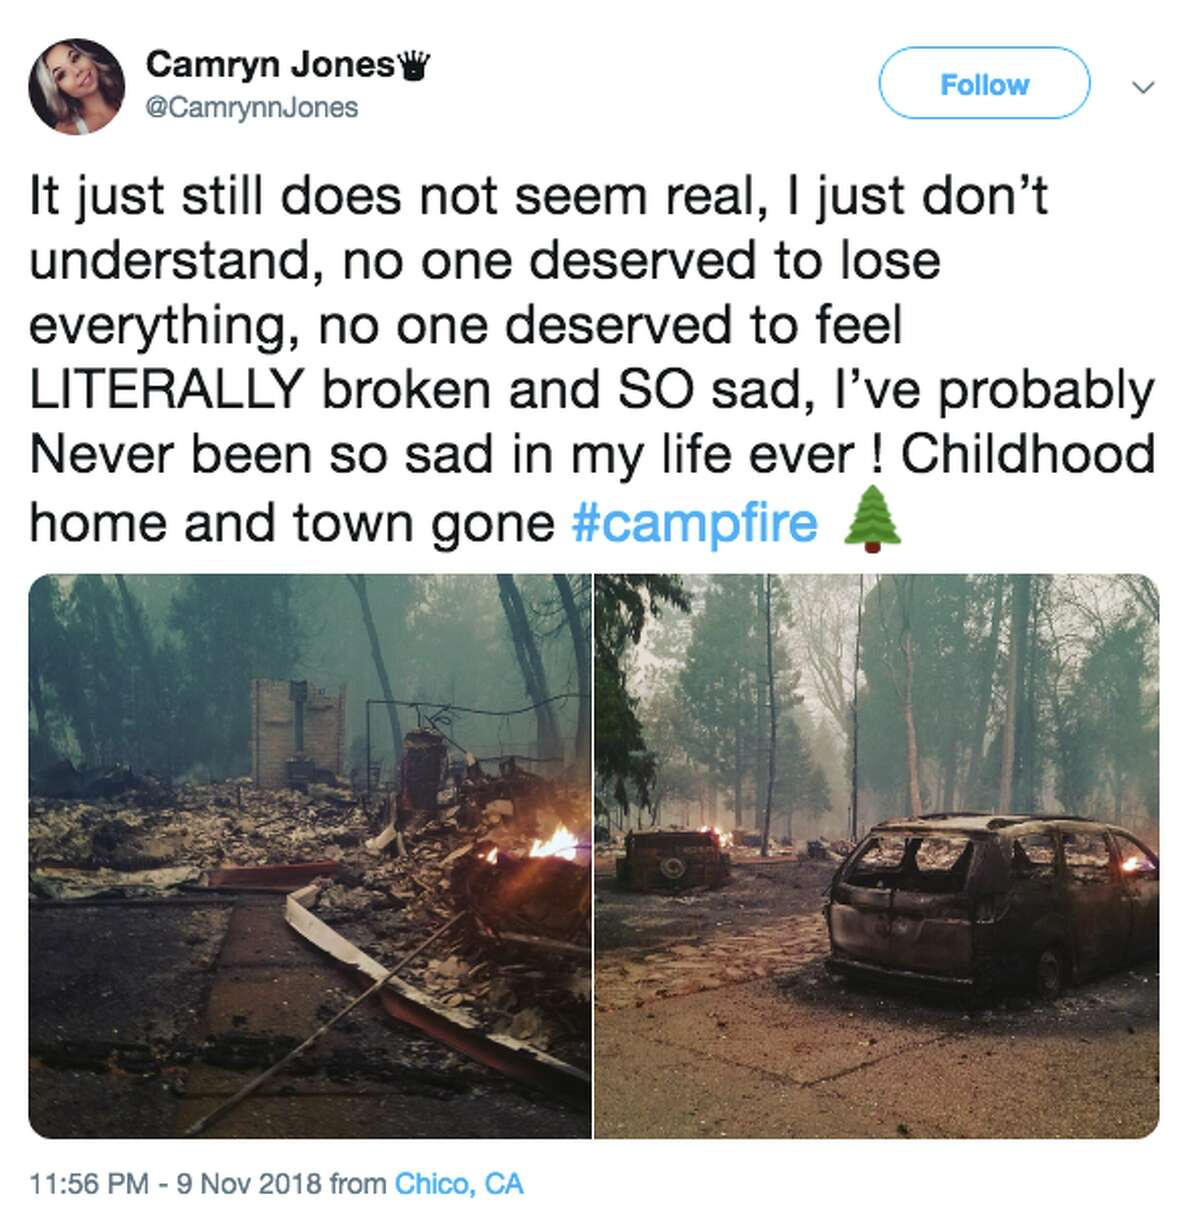 @CamrynnJones shared a photo on Friday, Nov. 10, 2018 of her childhood home that was destroyed from the Camp Fire.